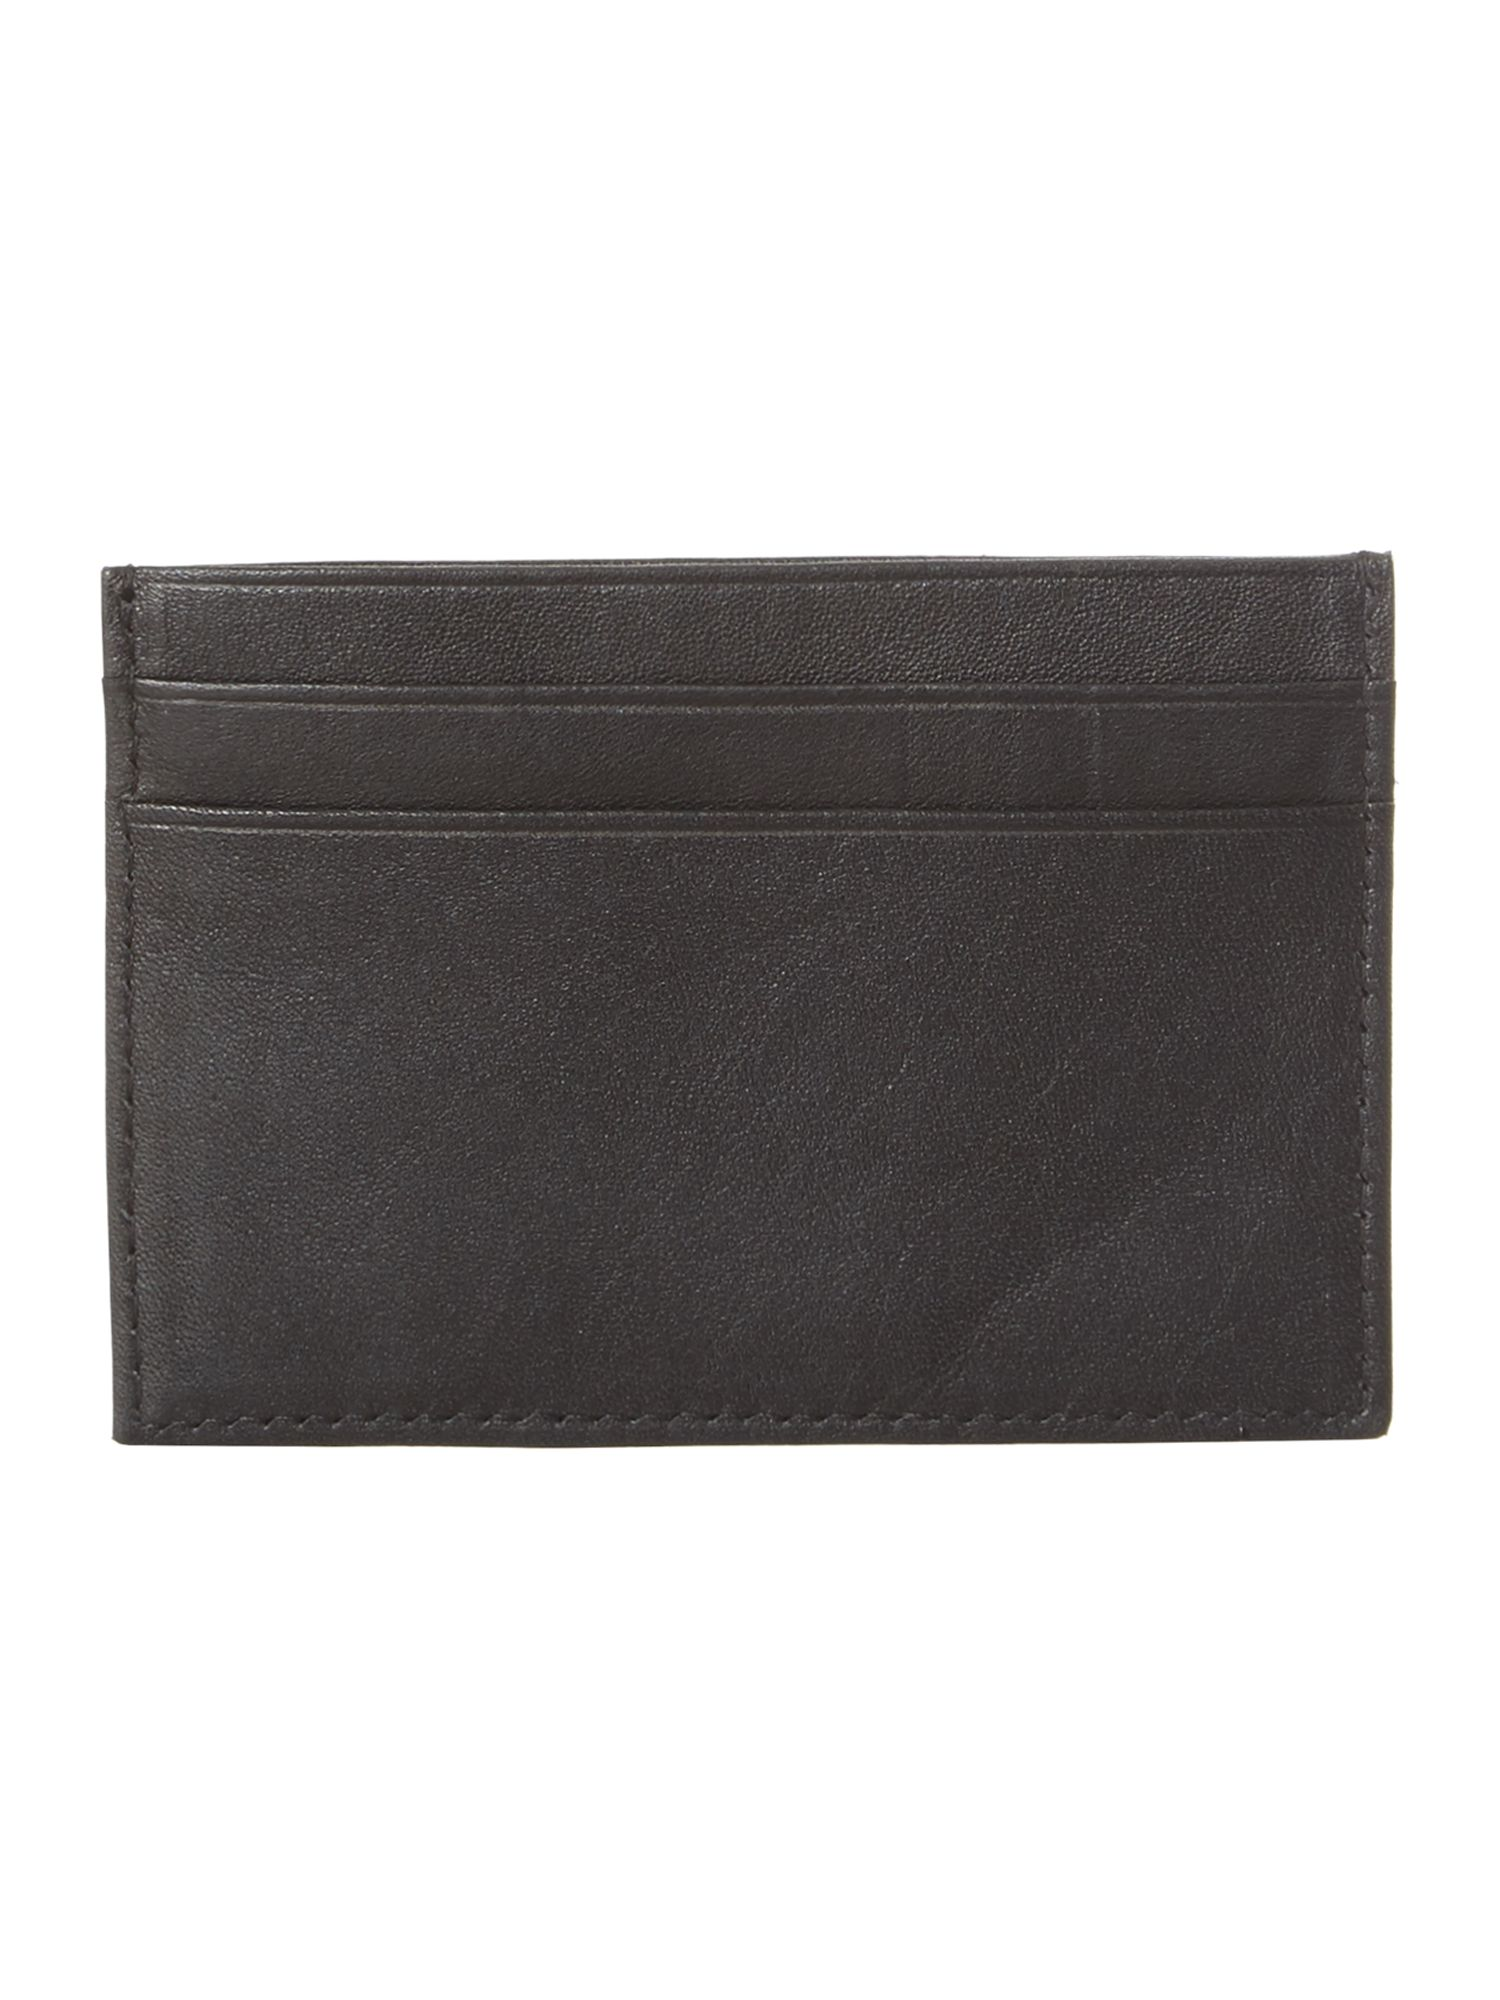 Flat credit card holder